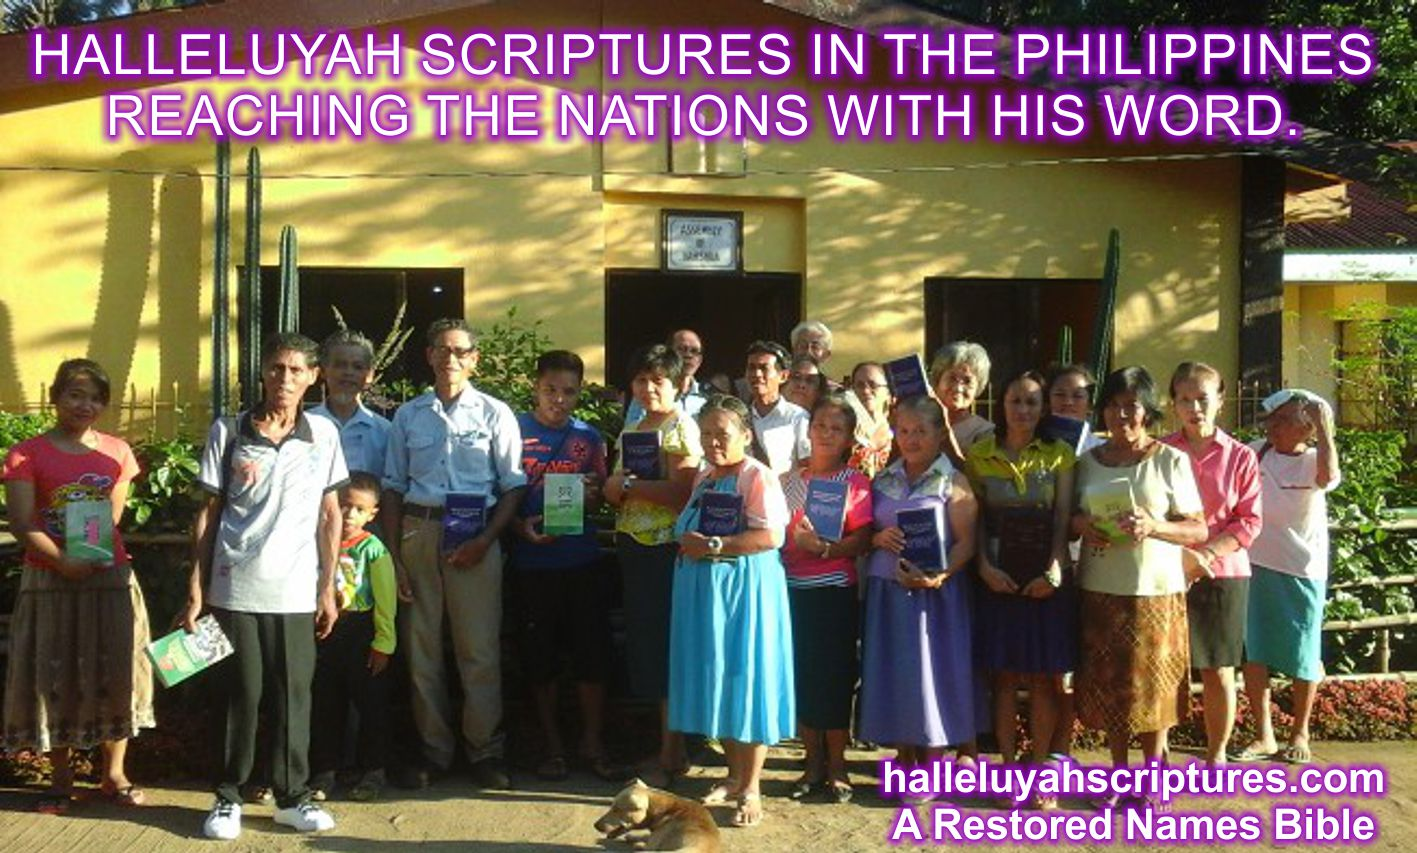 + HalleluYah Scriptures Review + Restored Name Bible + Best Bible + Cepher + The Scriptures + Hebrew Roots bible + Sacared Name Bible +Phillipians Group 3a